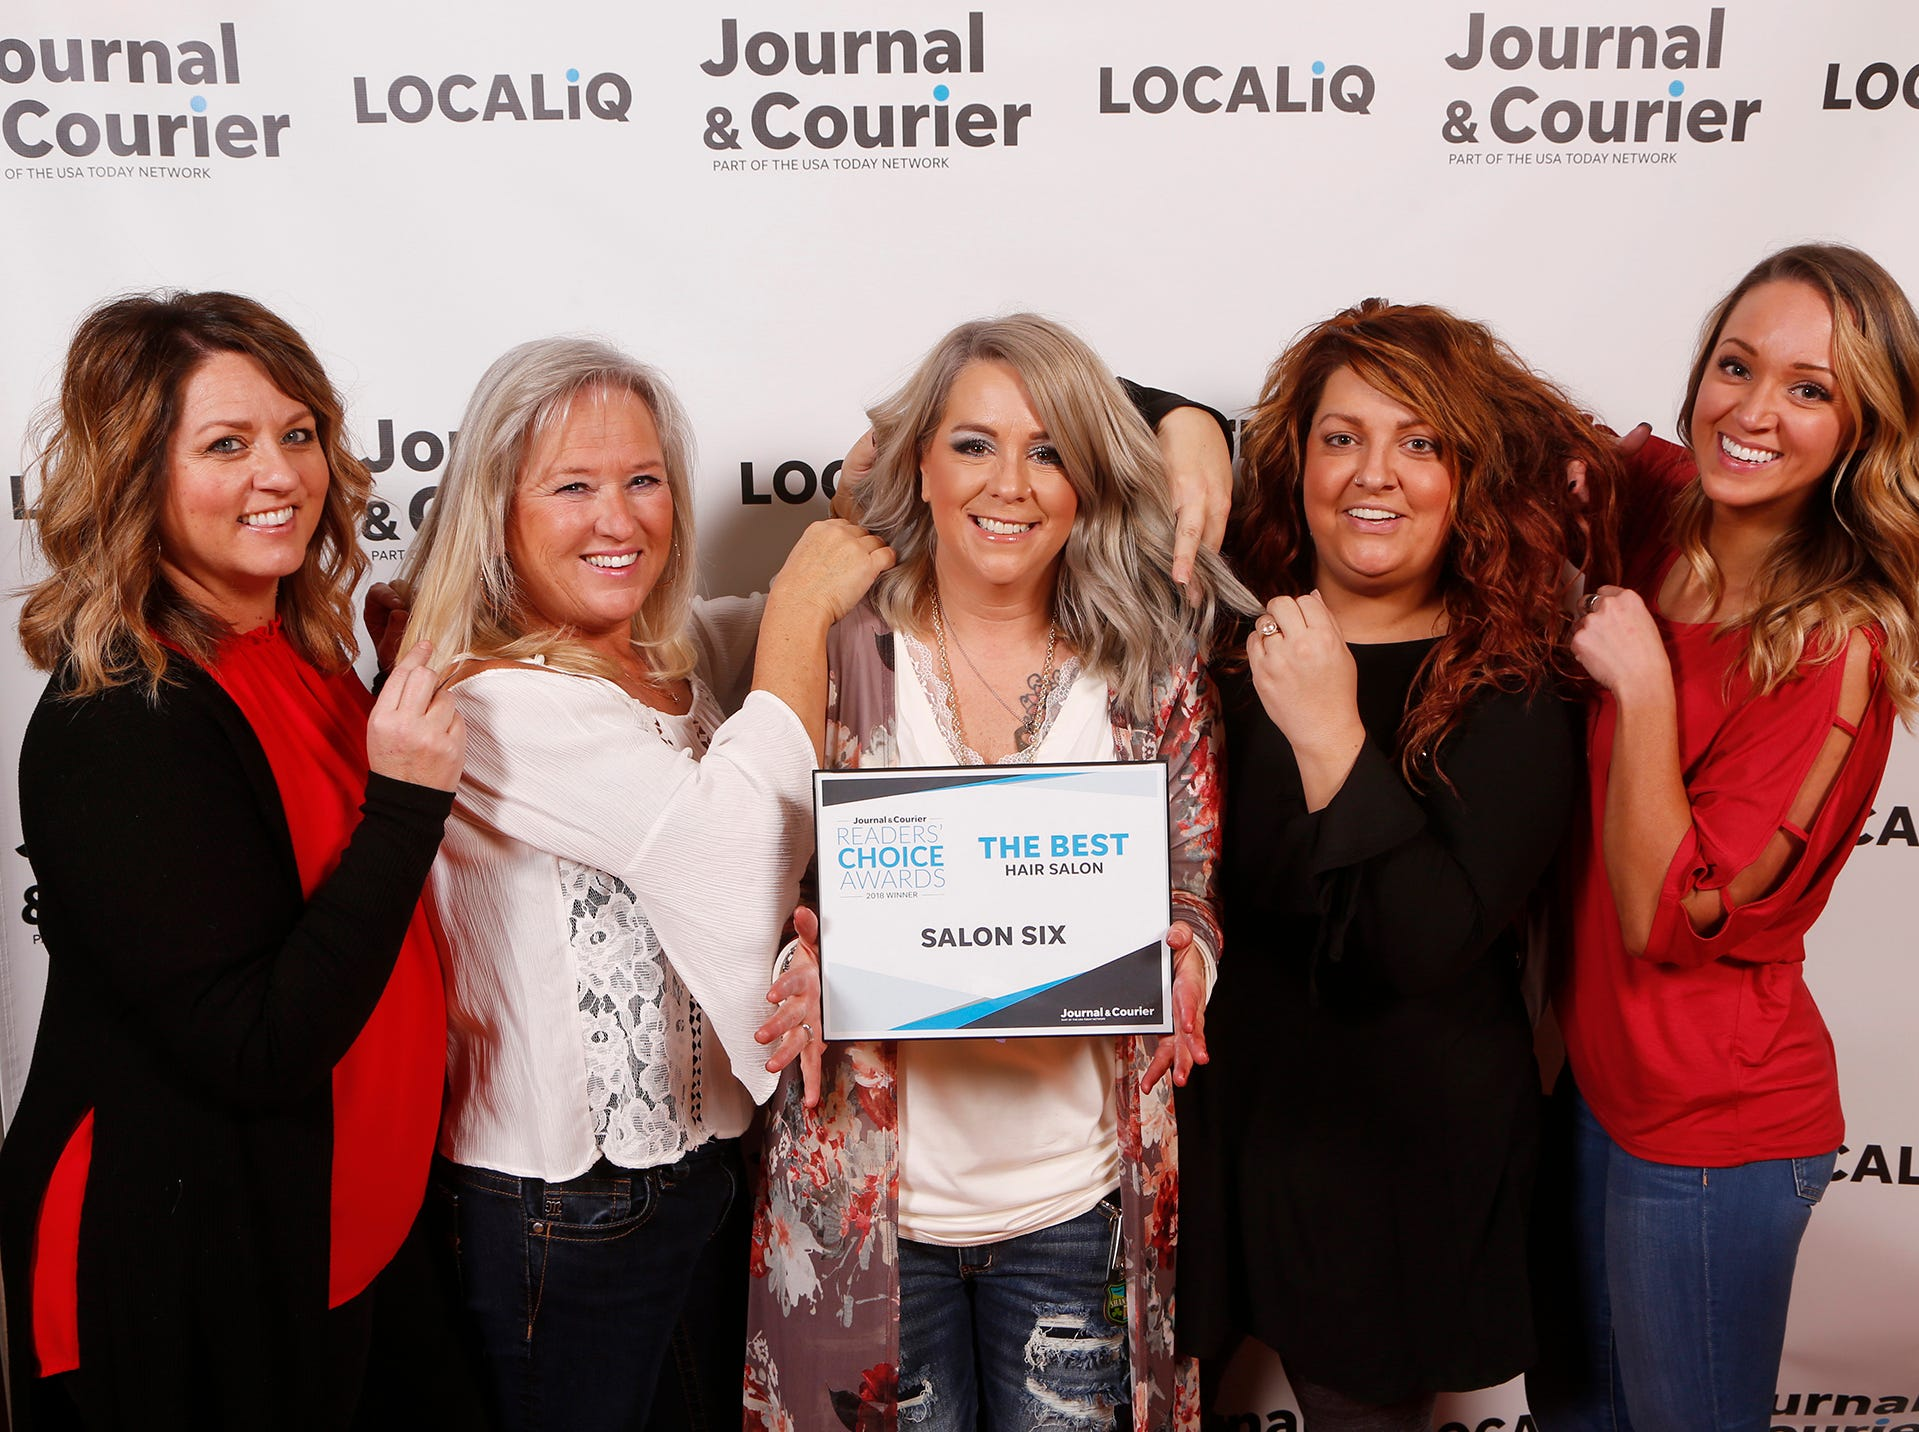 Salon Six, Journal & Courier Readers' Choice Awards winner for the best hair salon.